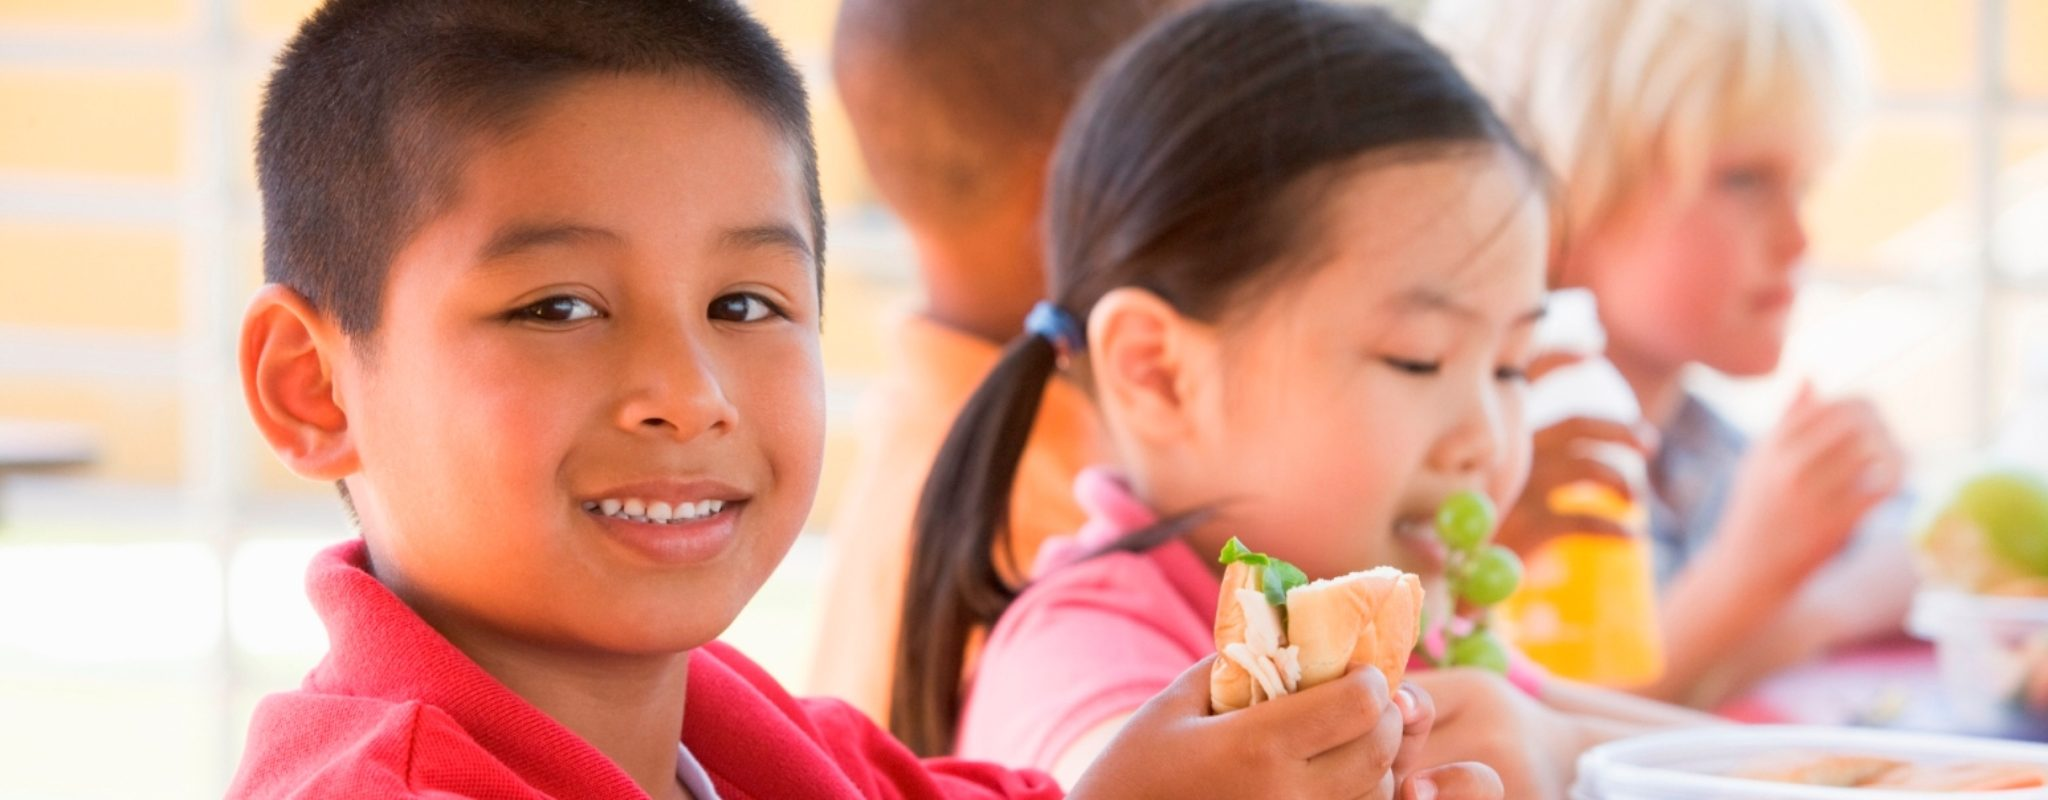 children eating healthy school lunches